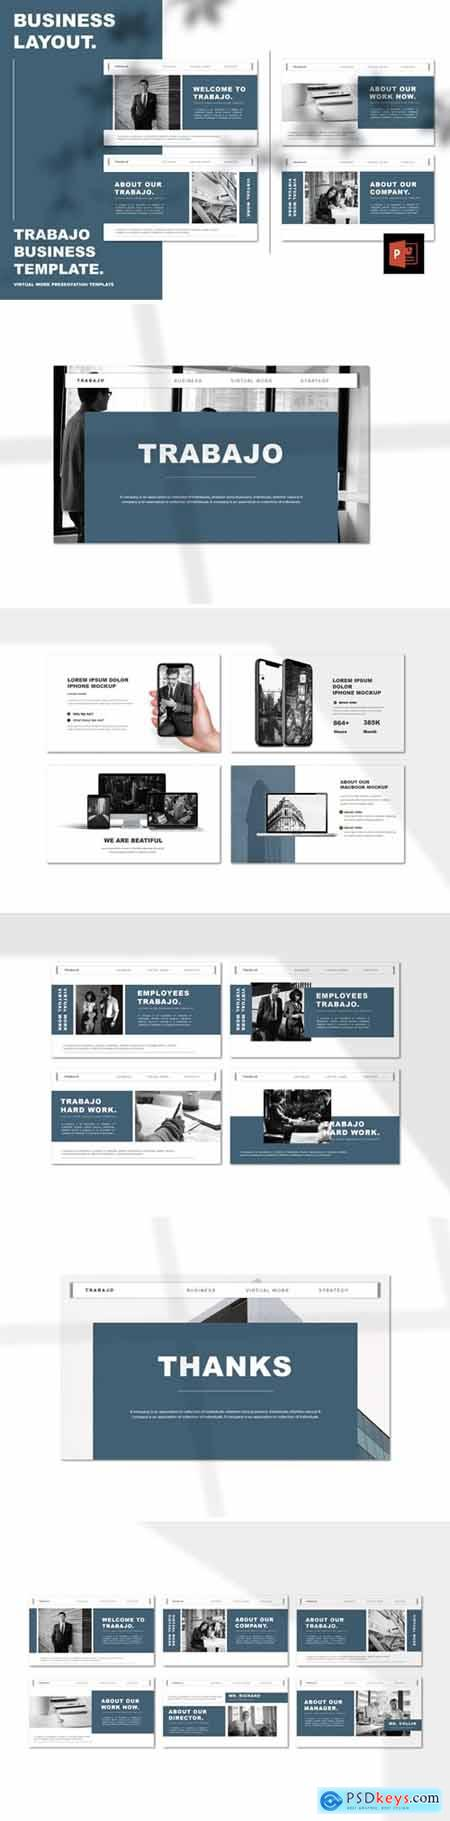 Trabajo - Work From Home Powerpoint, Keynote and Google Slides Templates